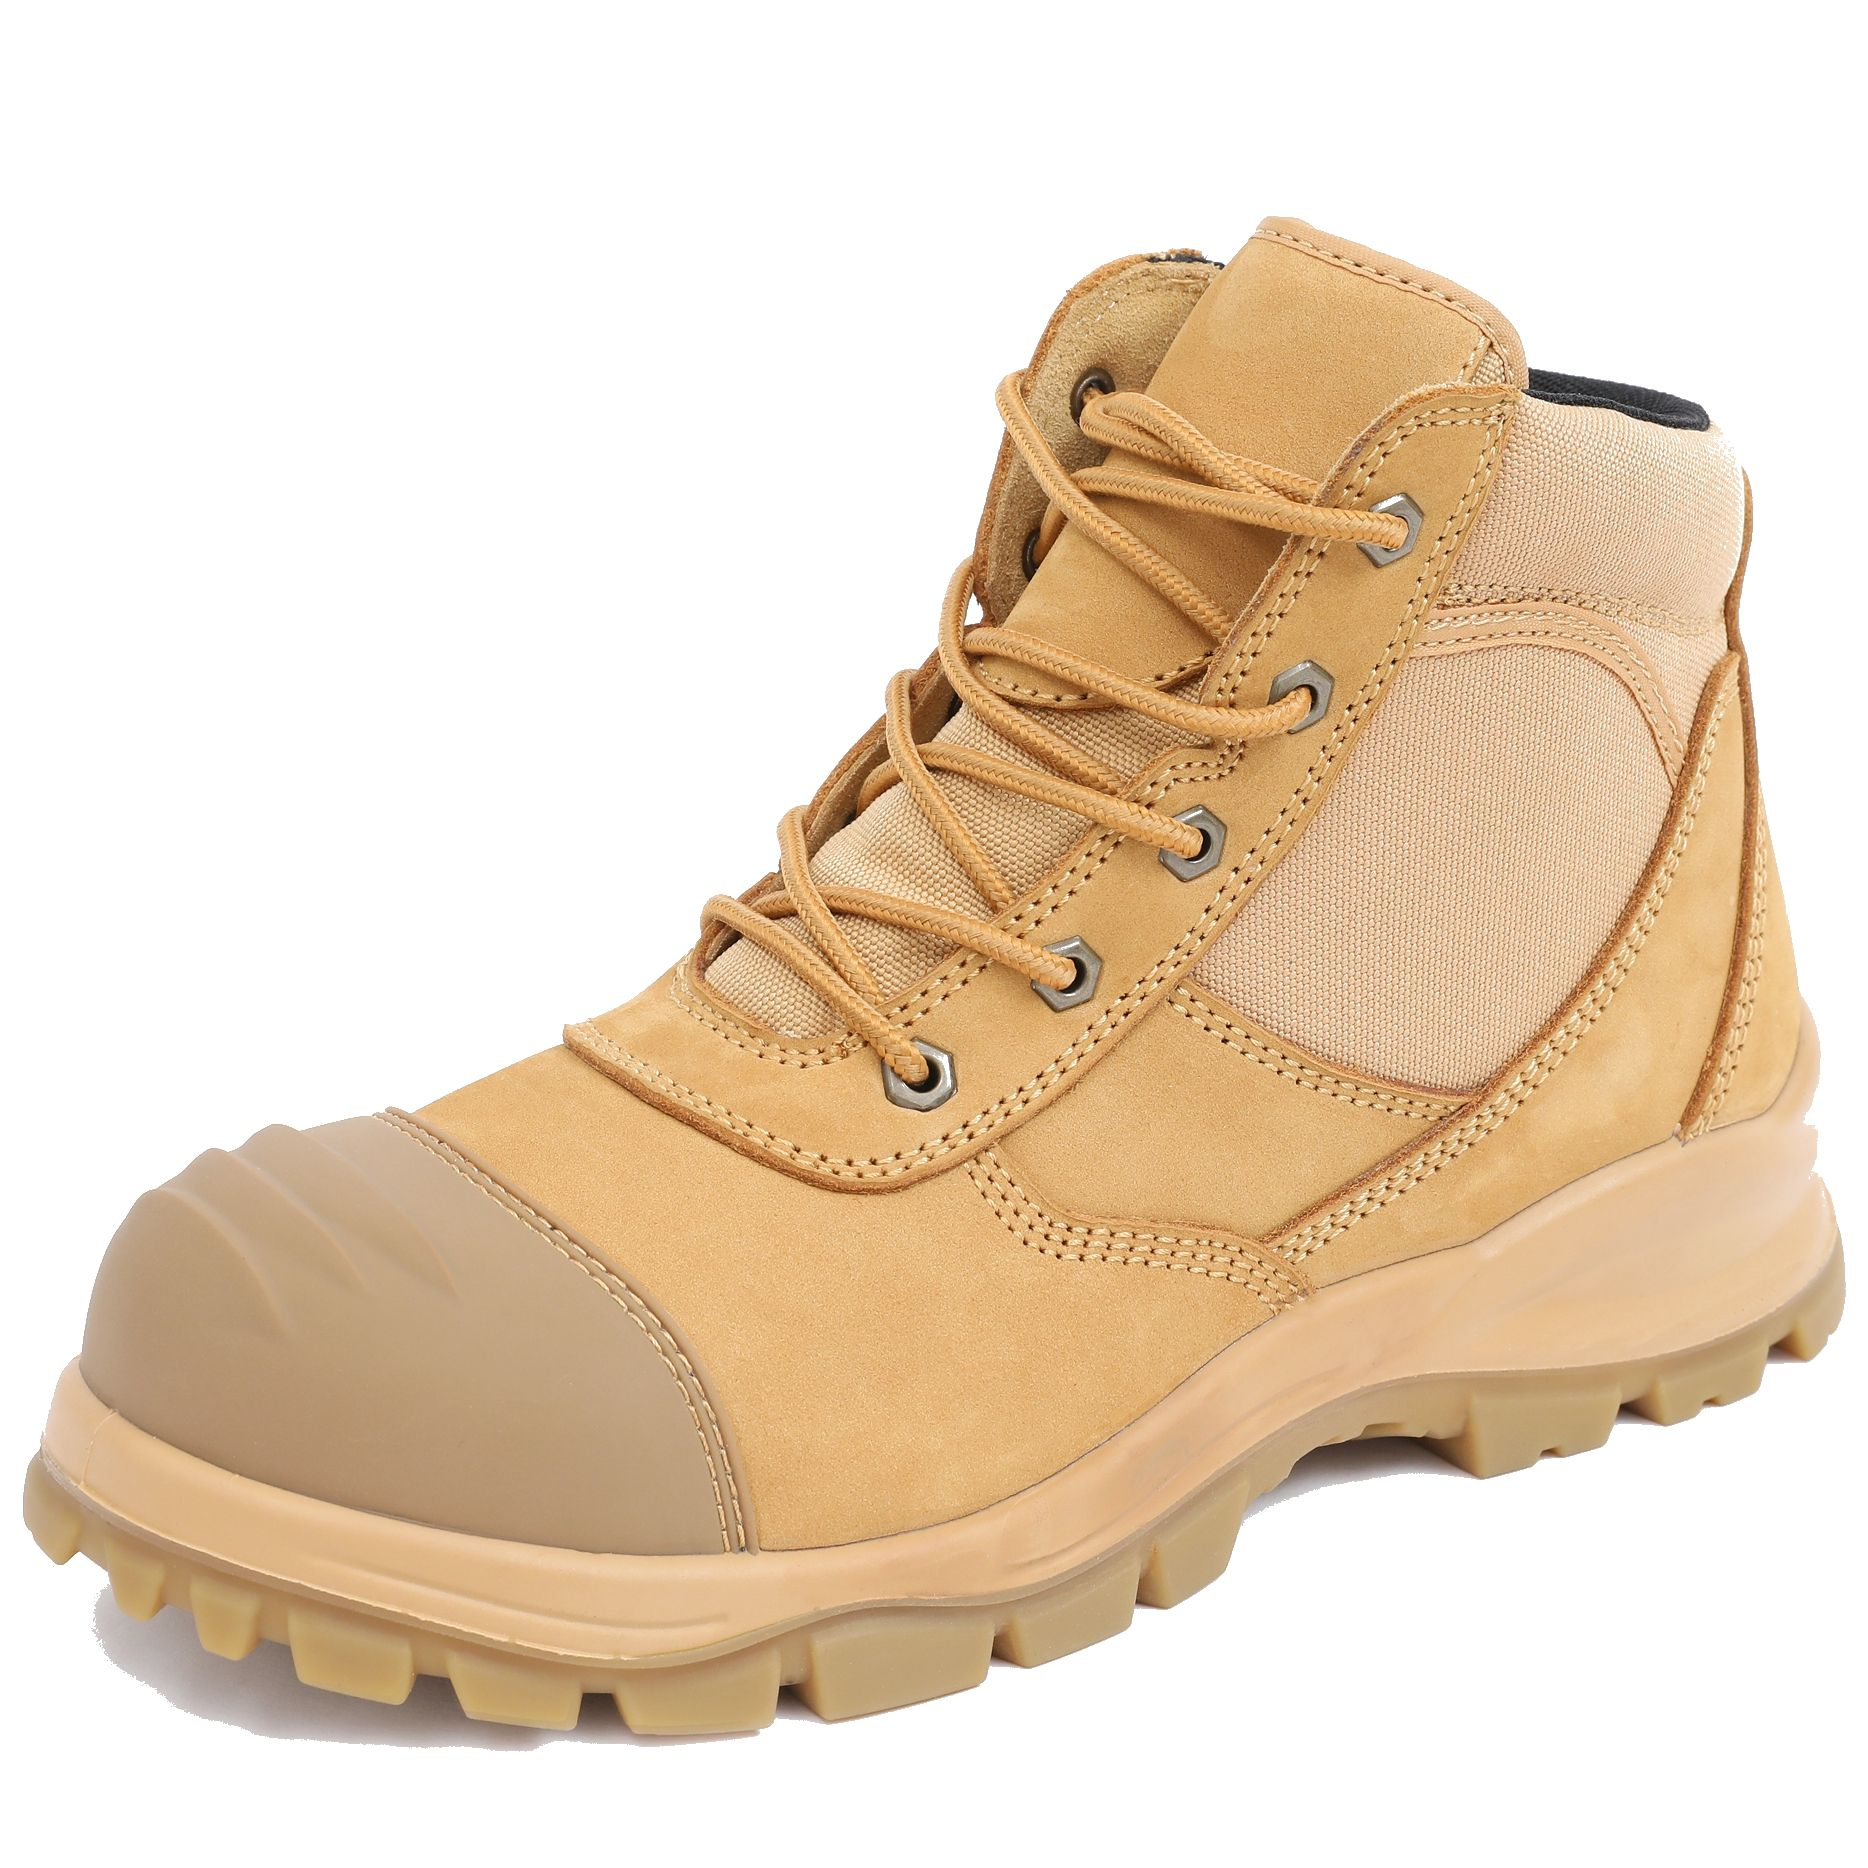 labor day work boot sale